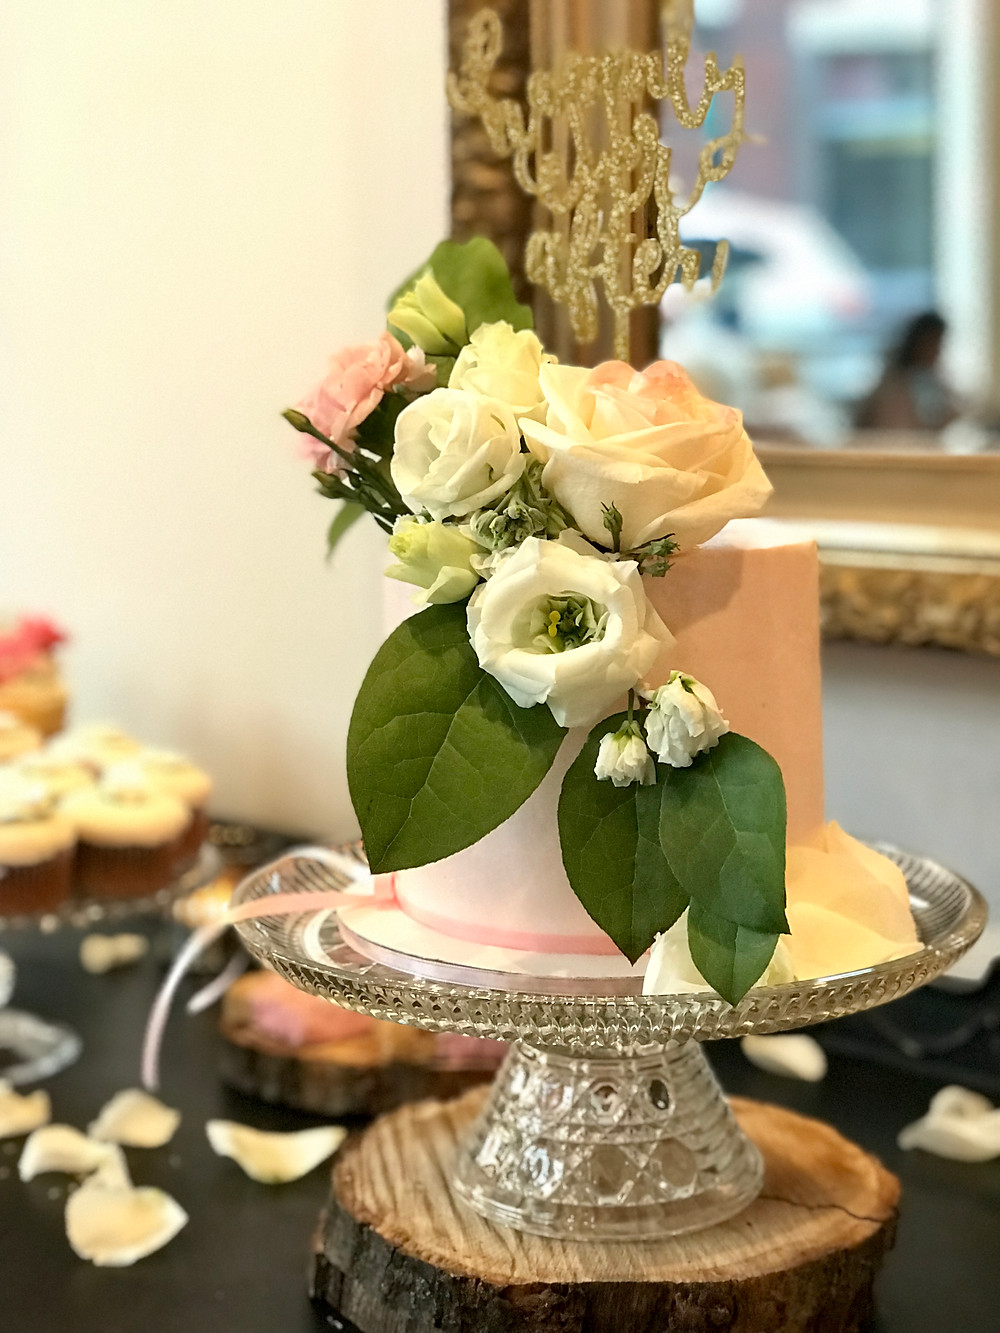 Pink fondant cake with beautiful fresh flowers was the star at the dessert table.